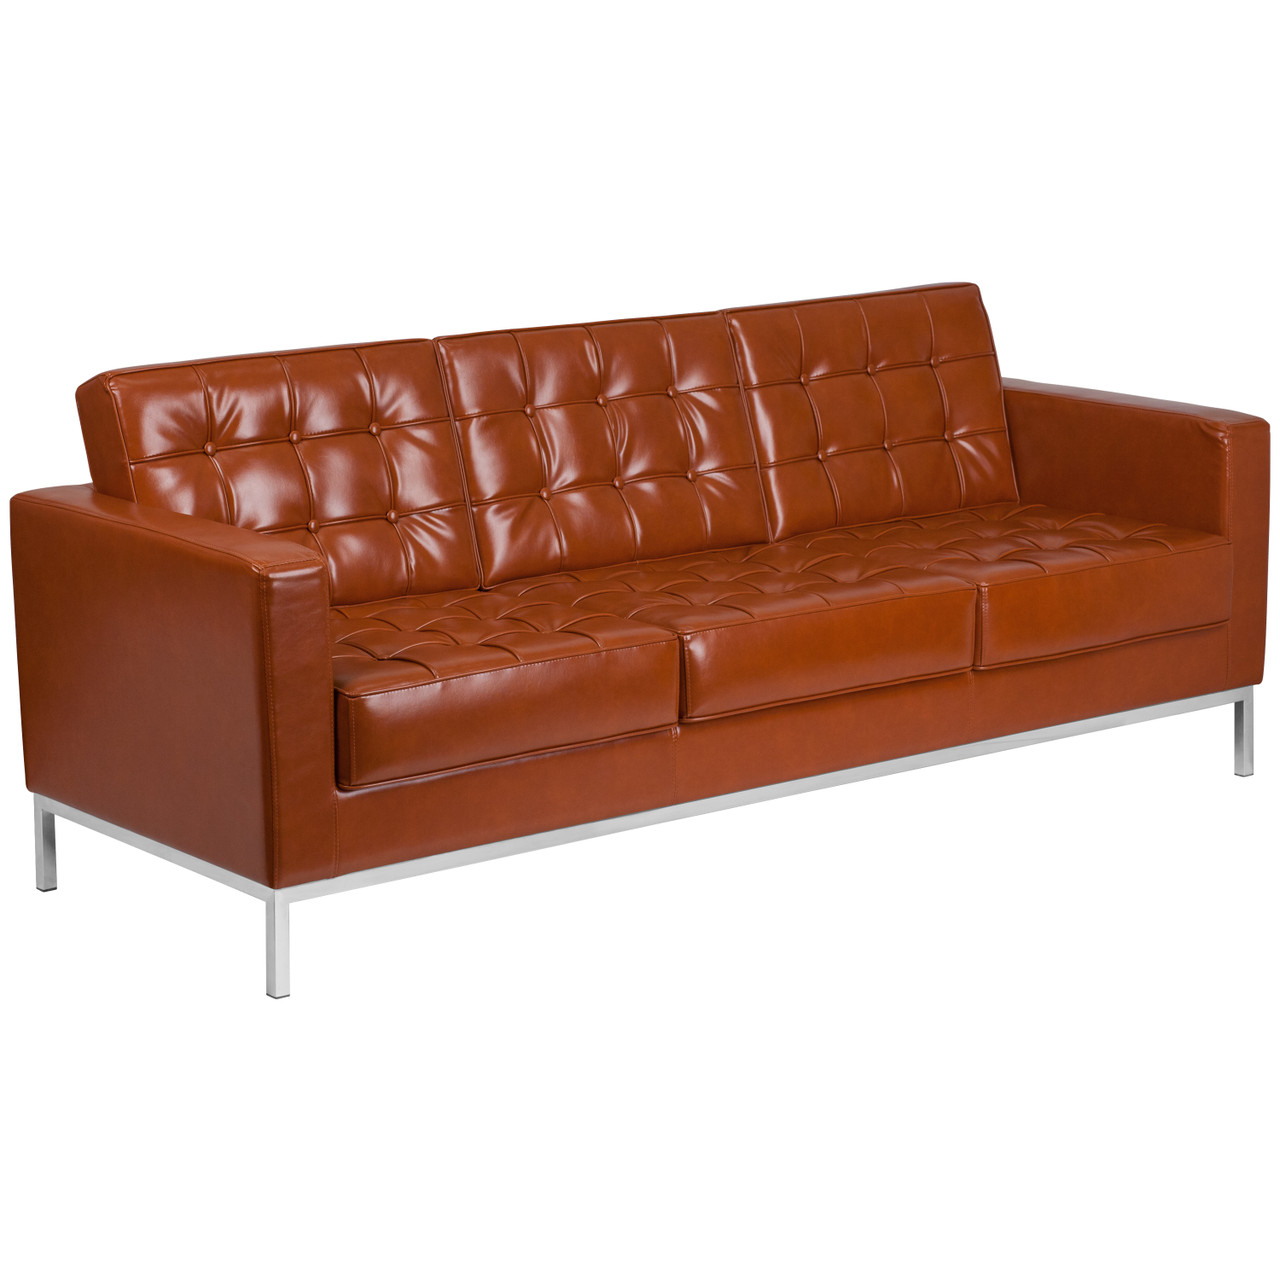 Contemporary Button Tufted Cognac Leather Sofa with Integrated Stainless  Steel Frame